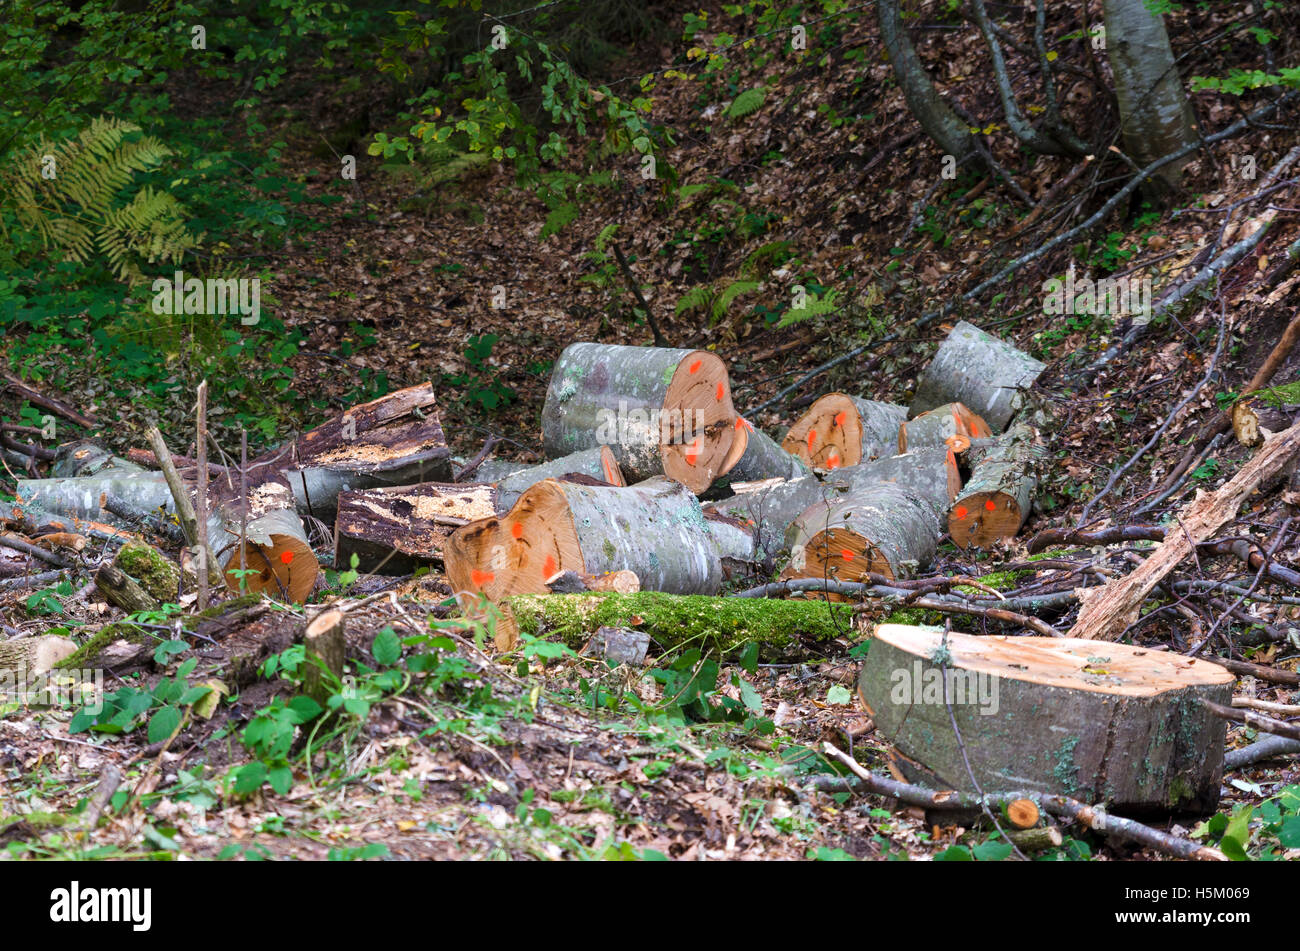 Marked logs in a forest. Lumber industry - Stock Image